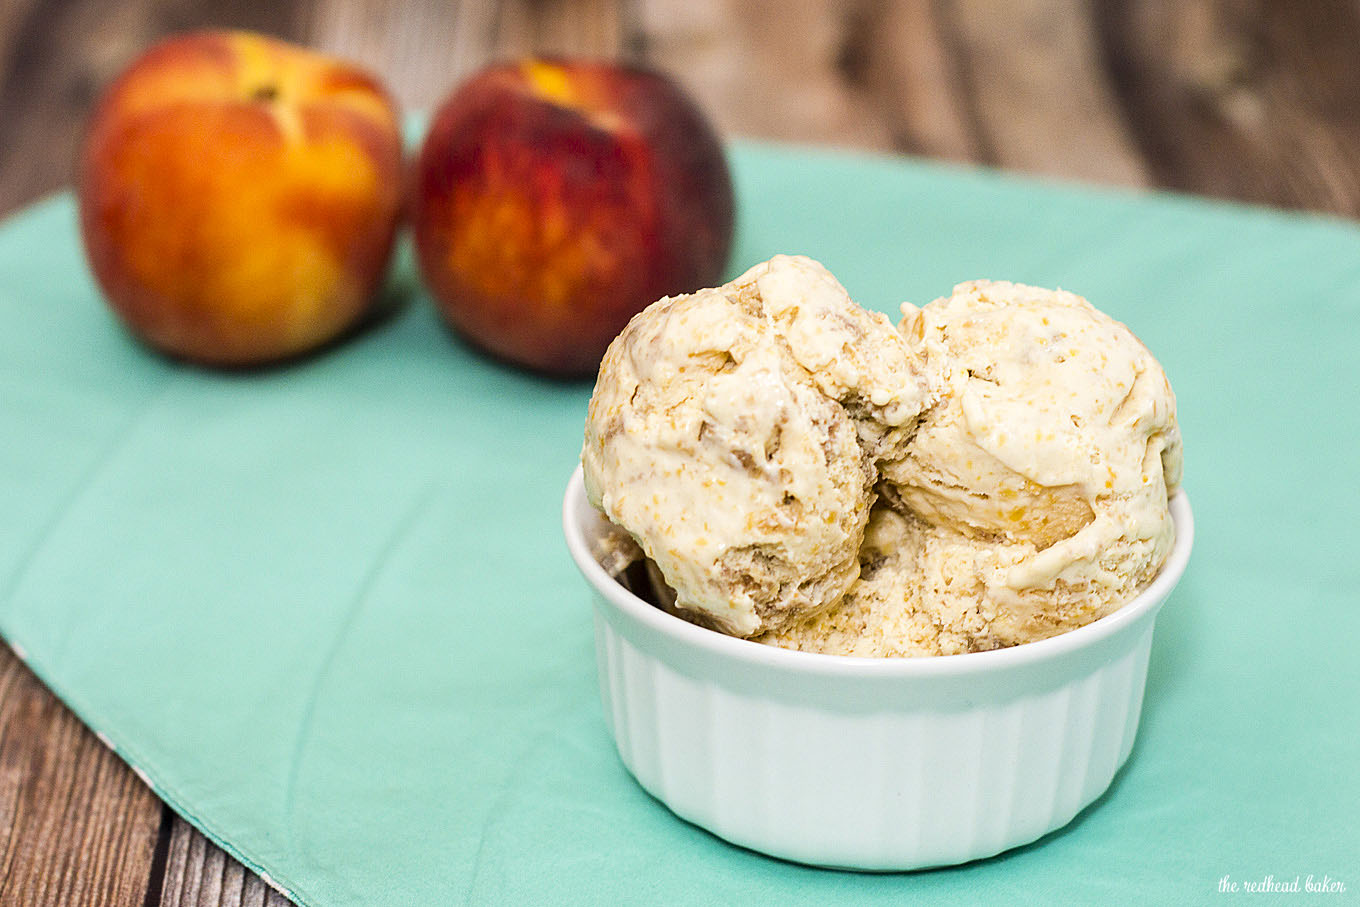 This peach pie ice cream is flavored with roasted peaches and has a swirl of graham cracker crumb crust, and no ice cream maker is required to make it! #SundaySupper